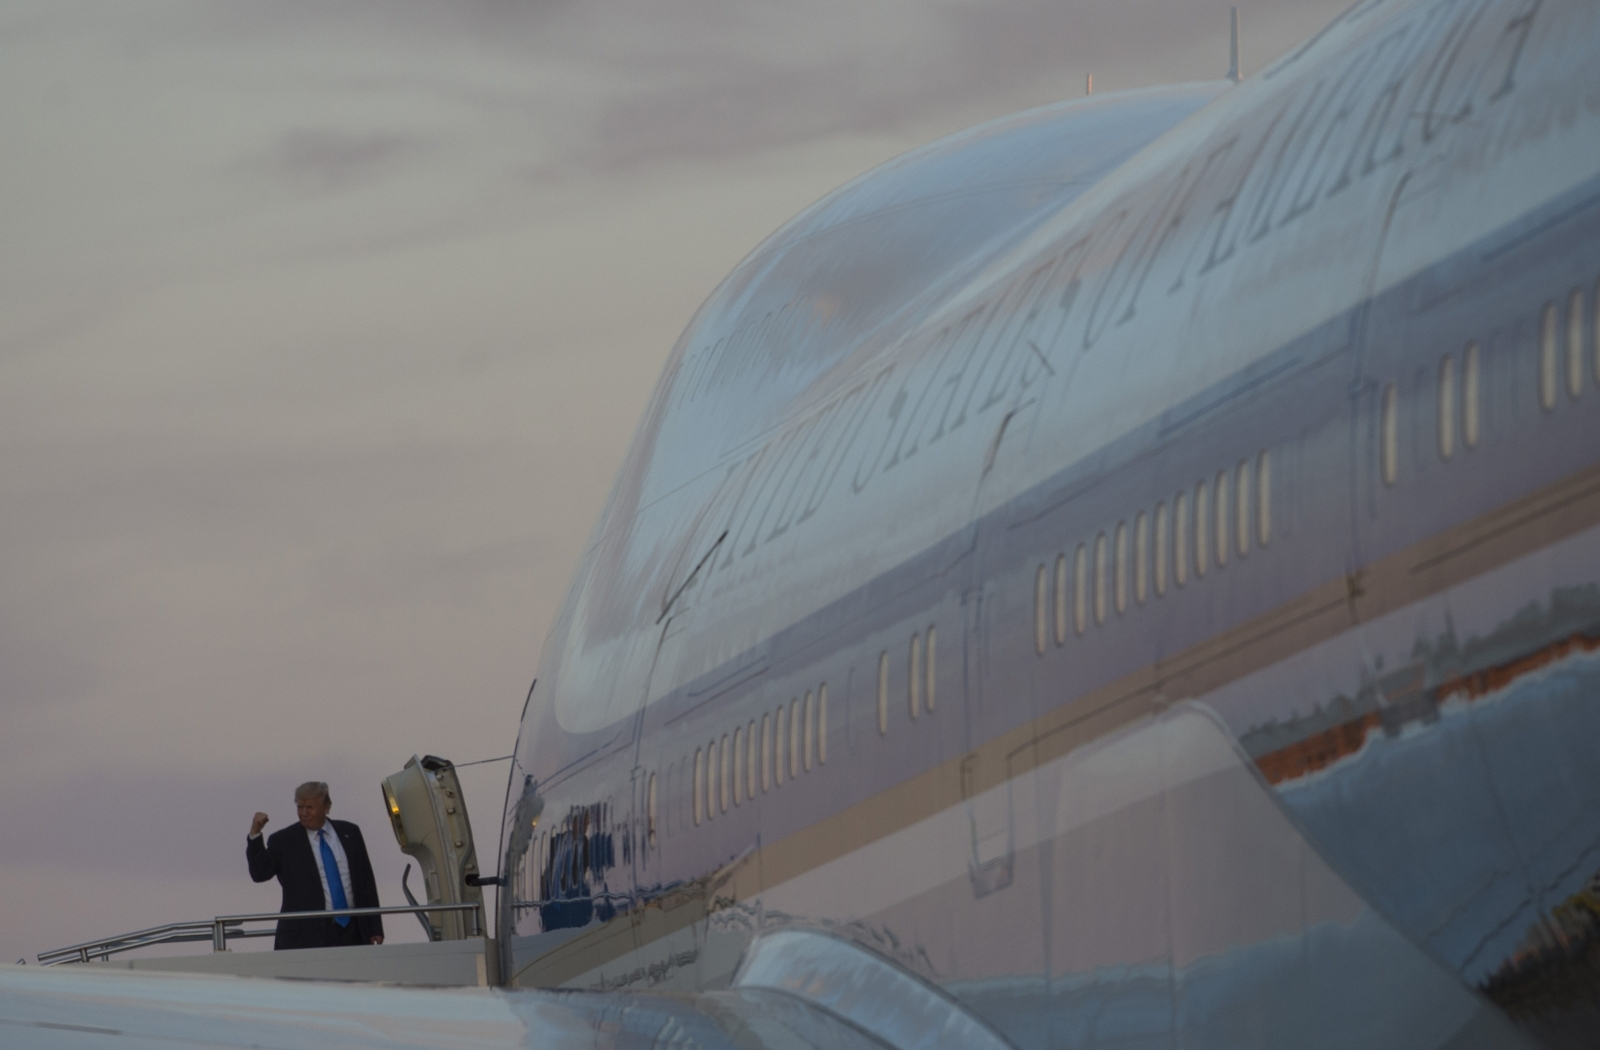 Trump May Get 'Boneyard' Boeing 747s For New Air Force One